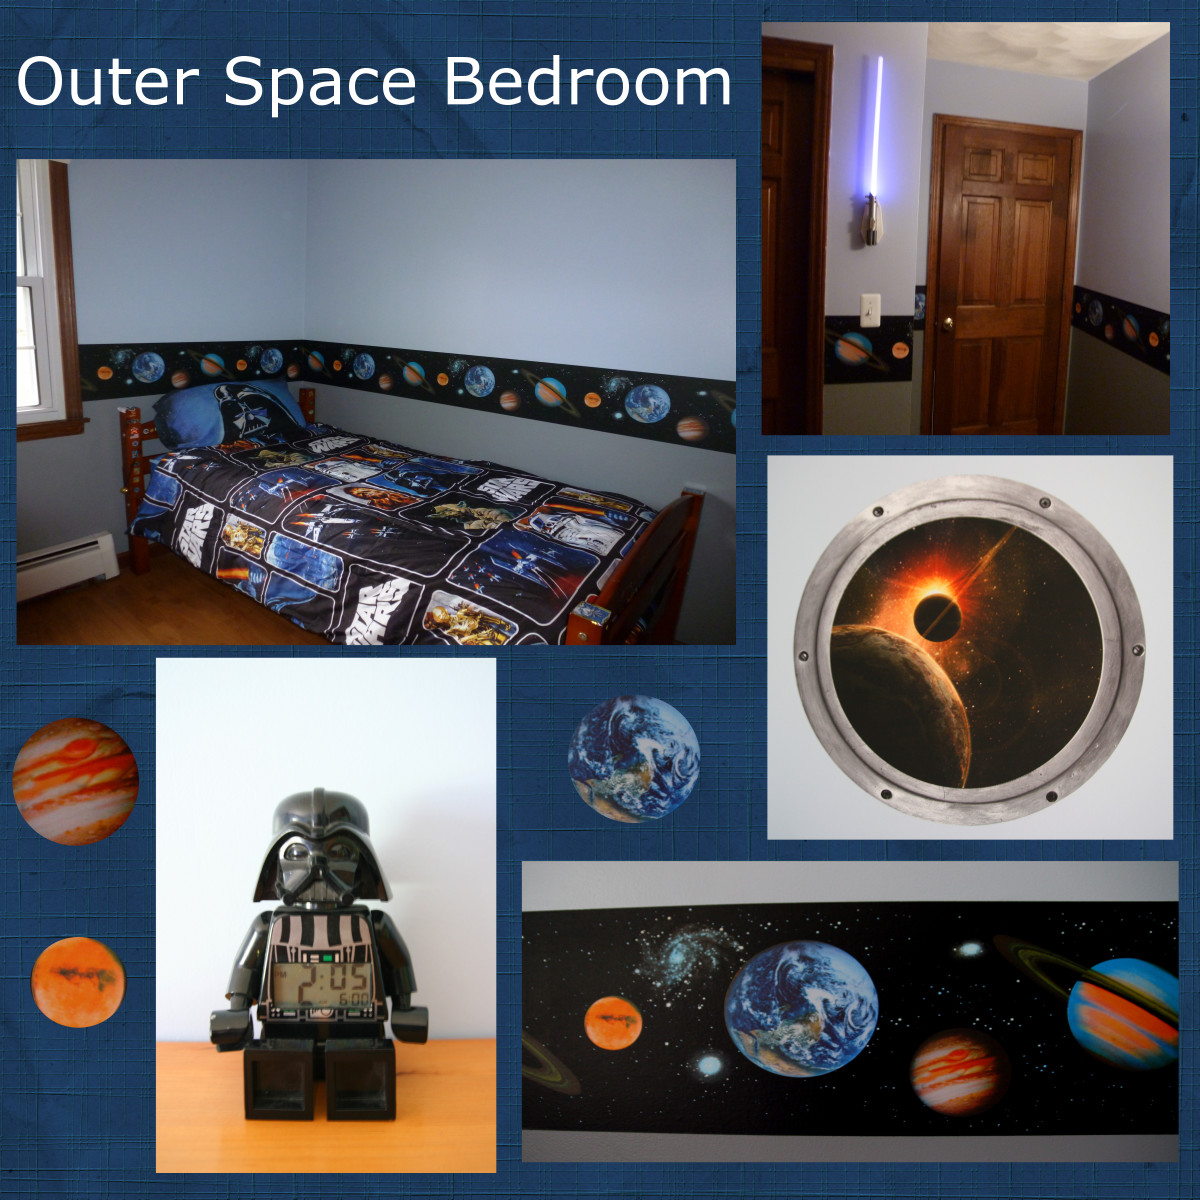 Outer space bedroom decorating ideas hubpages for Outer space bedroom design